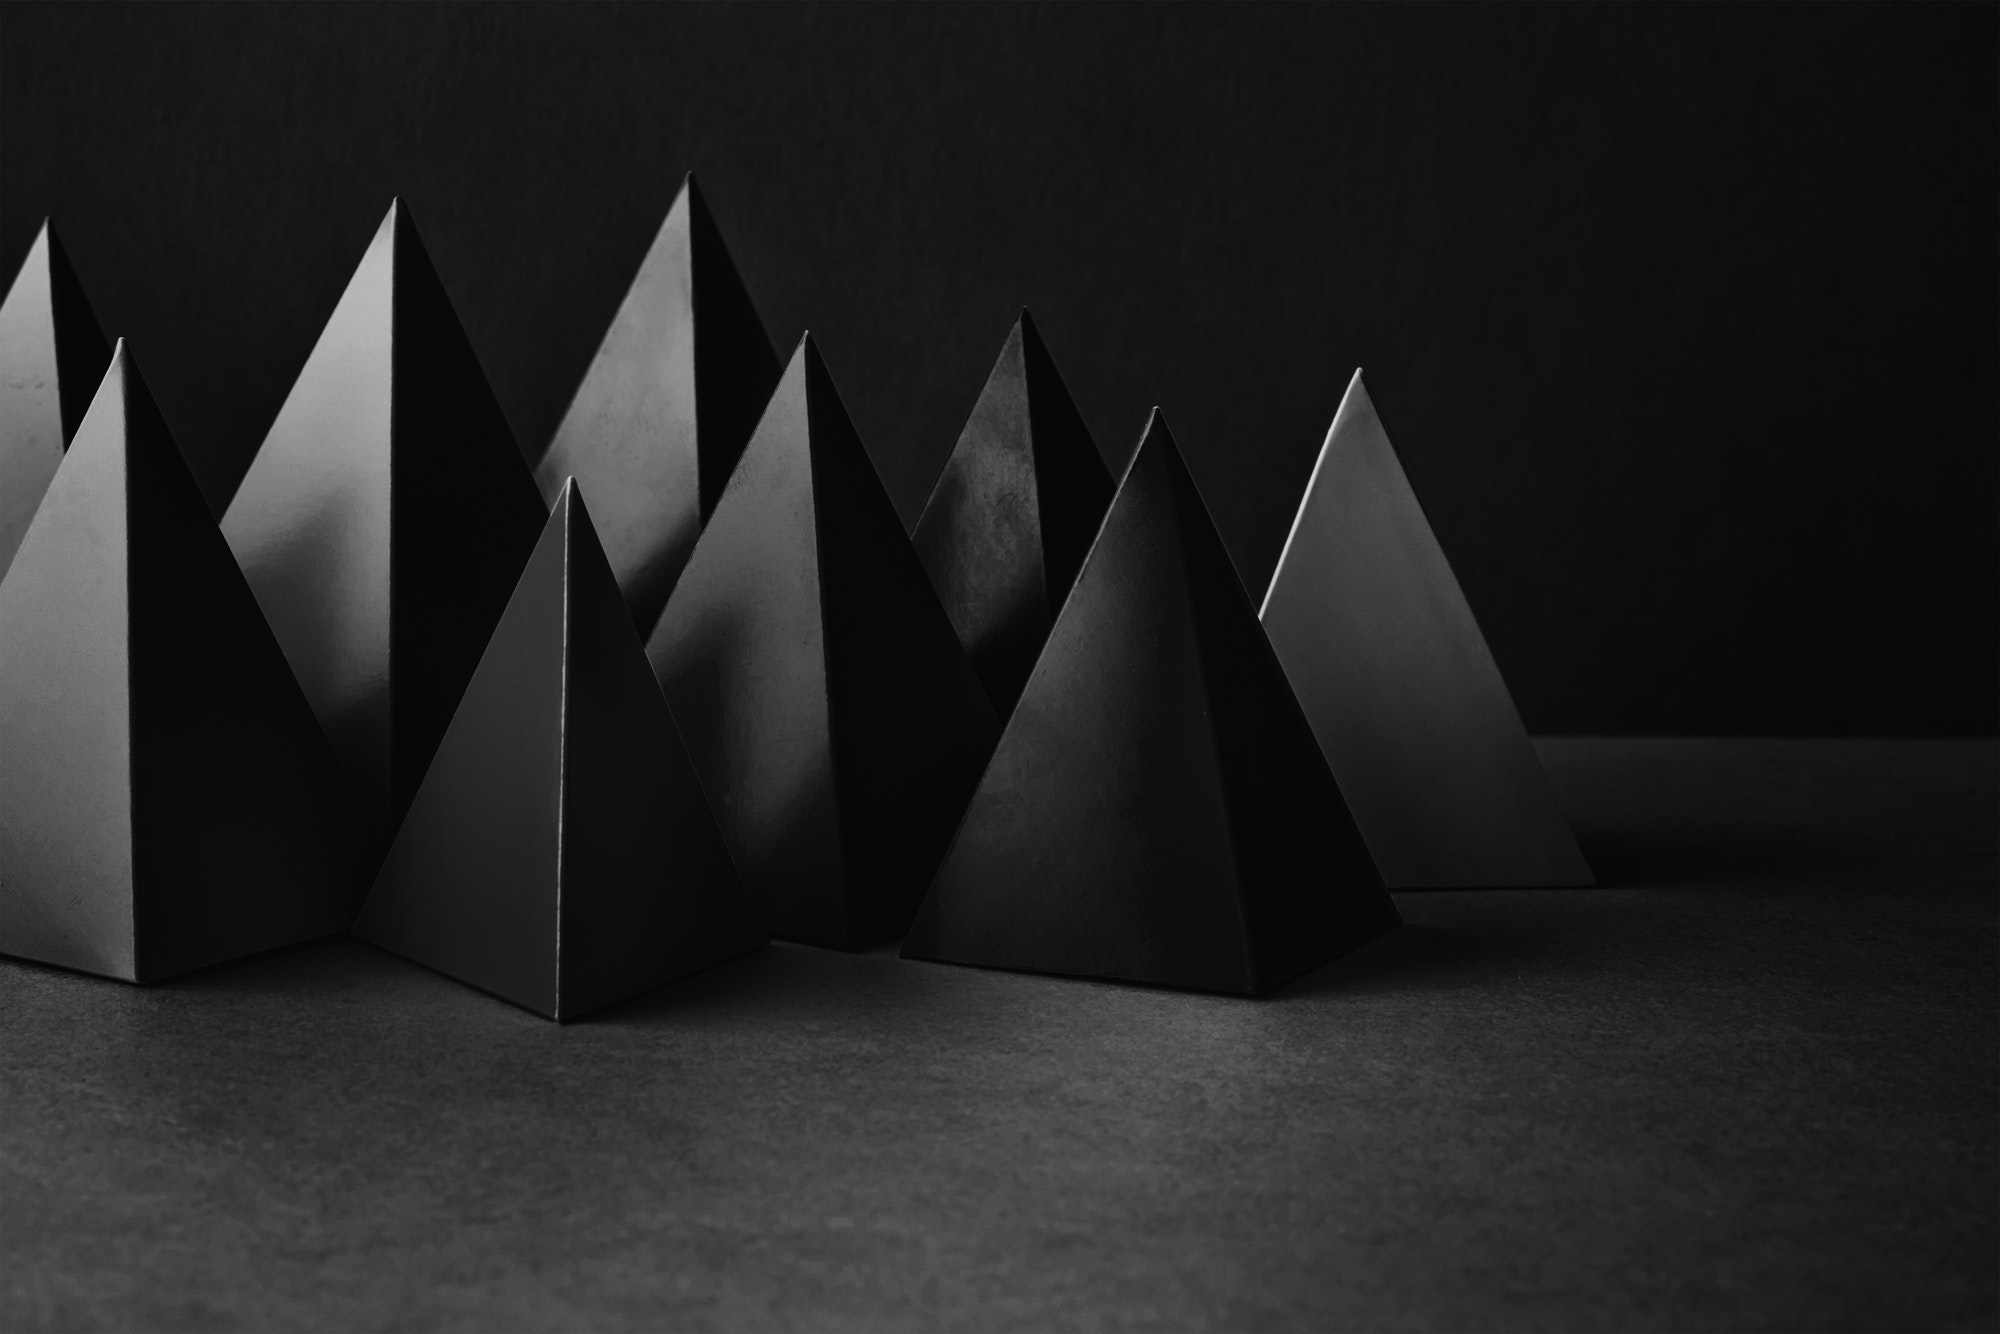 Prism pyramid objects on black gray background. Abstract geometrical figures still life composition.